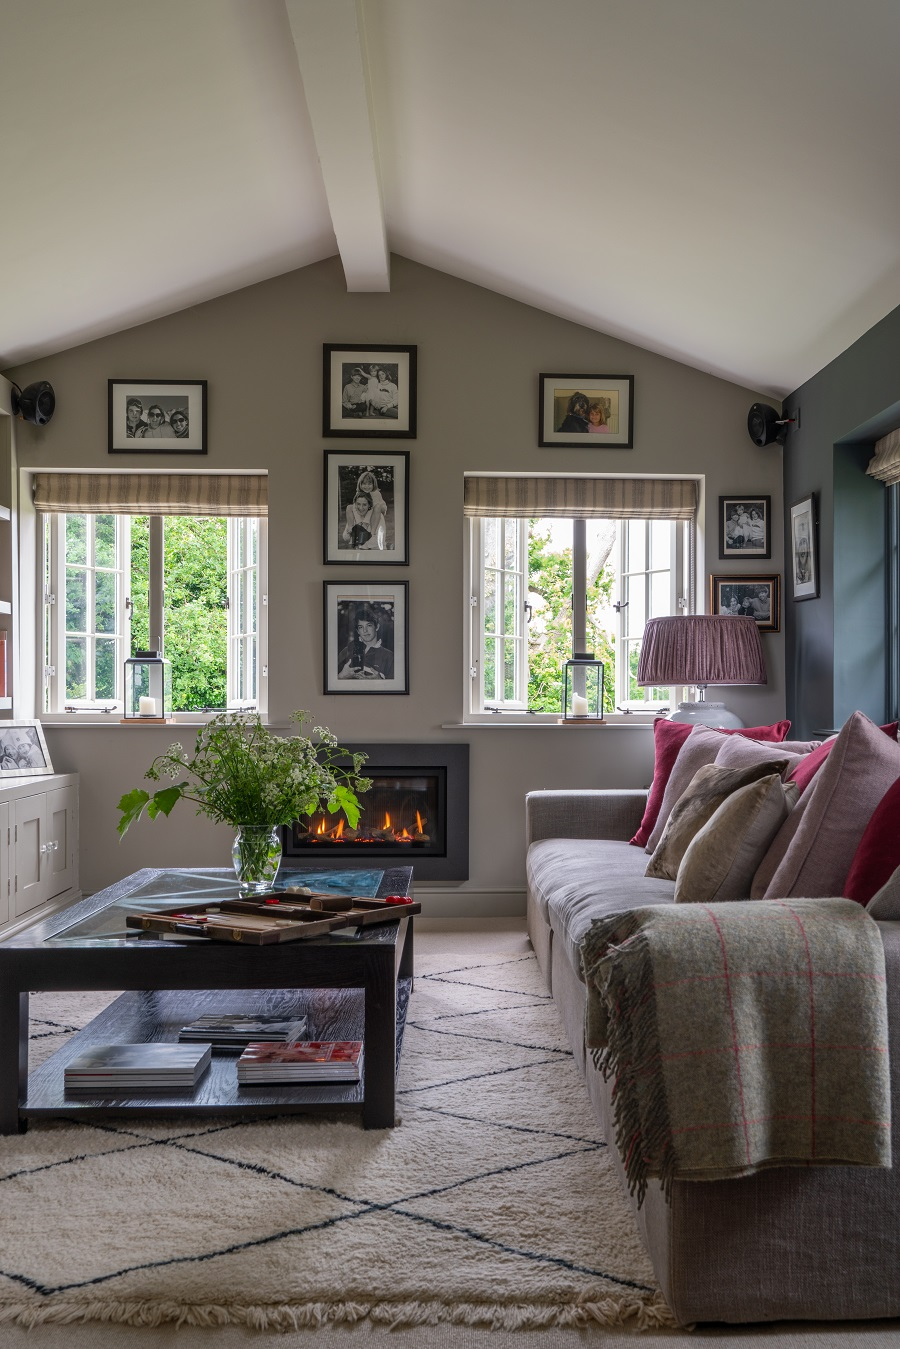 Comfy Modern Country Style in an Upside-Down House